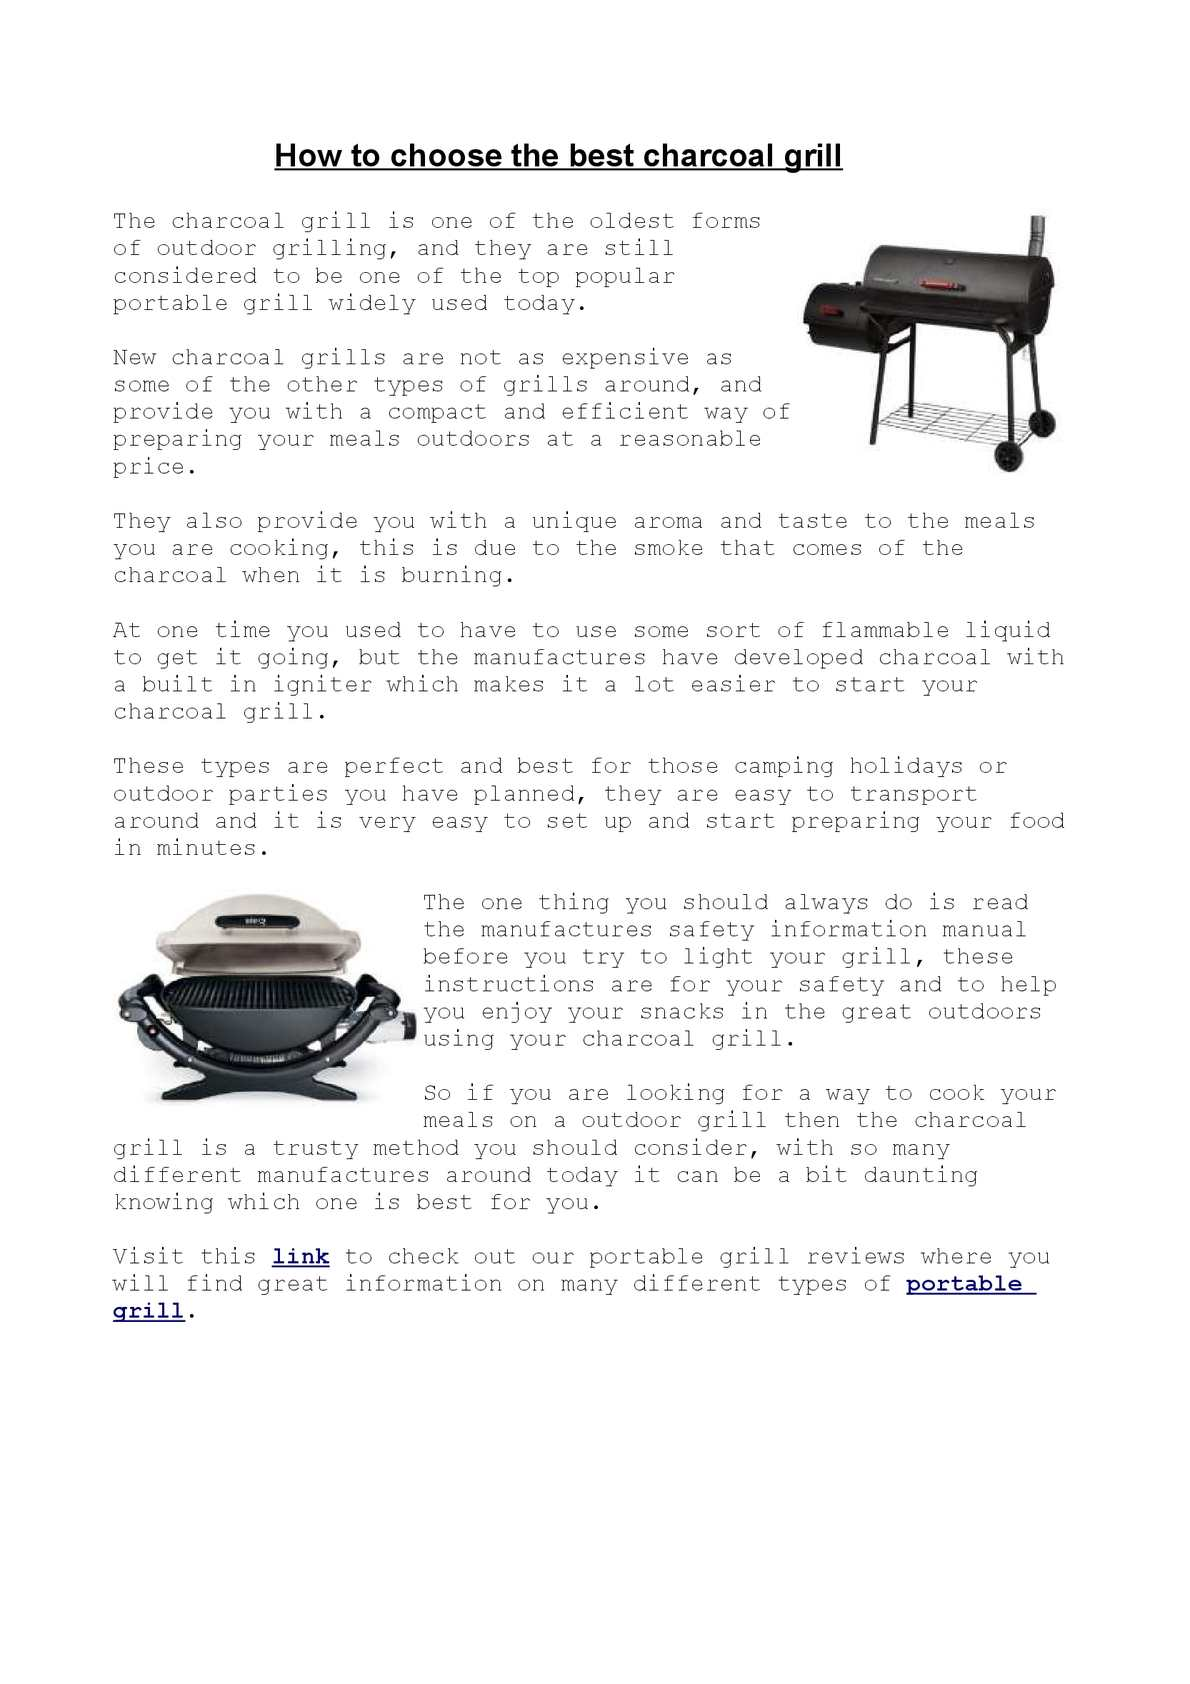 Calameo Charcoal Grill